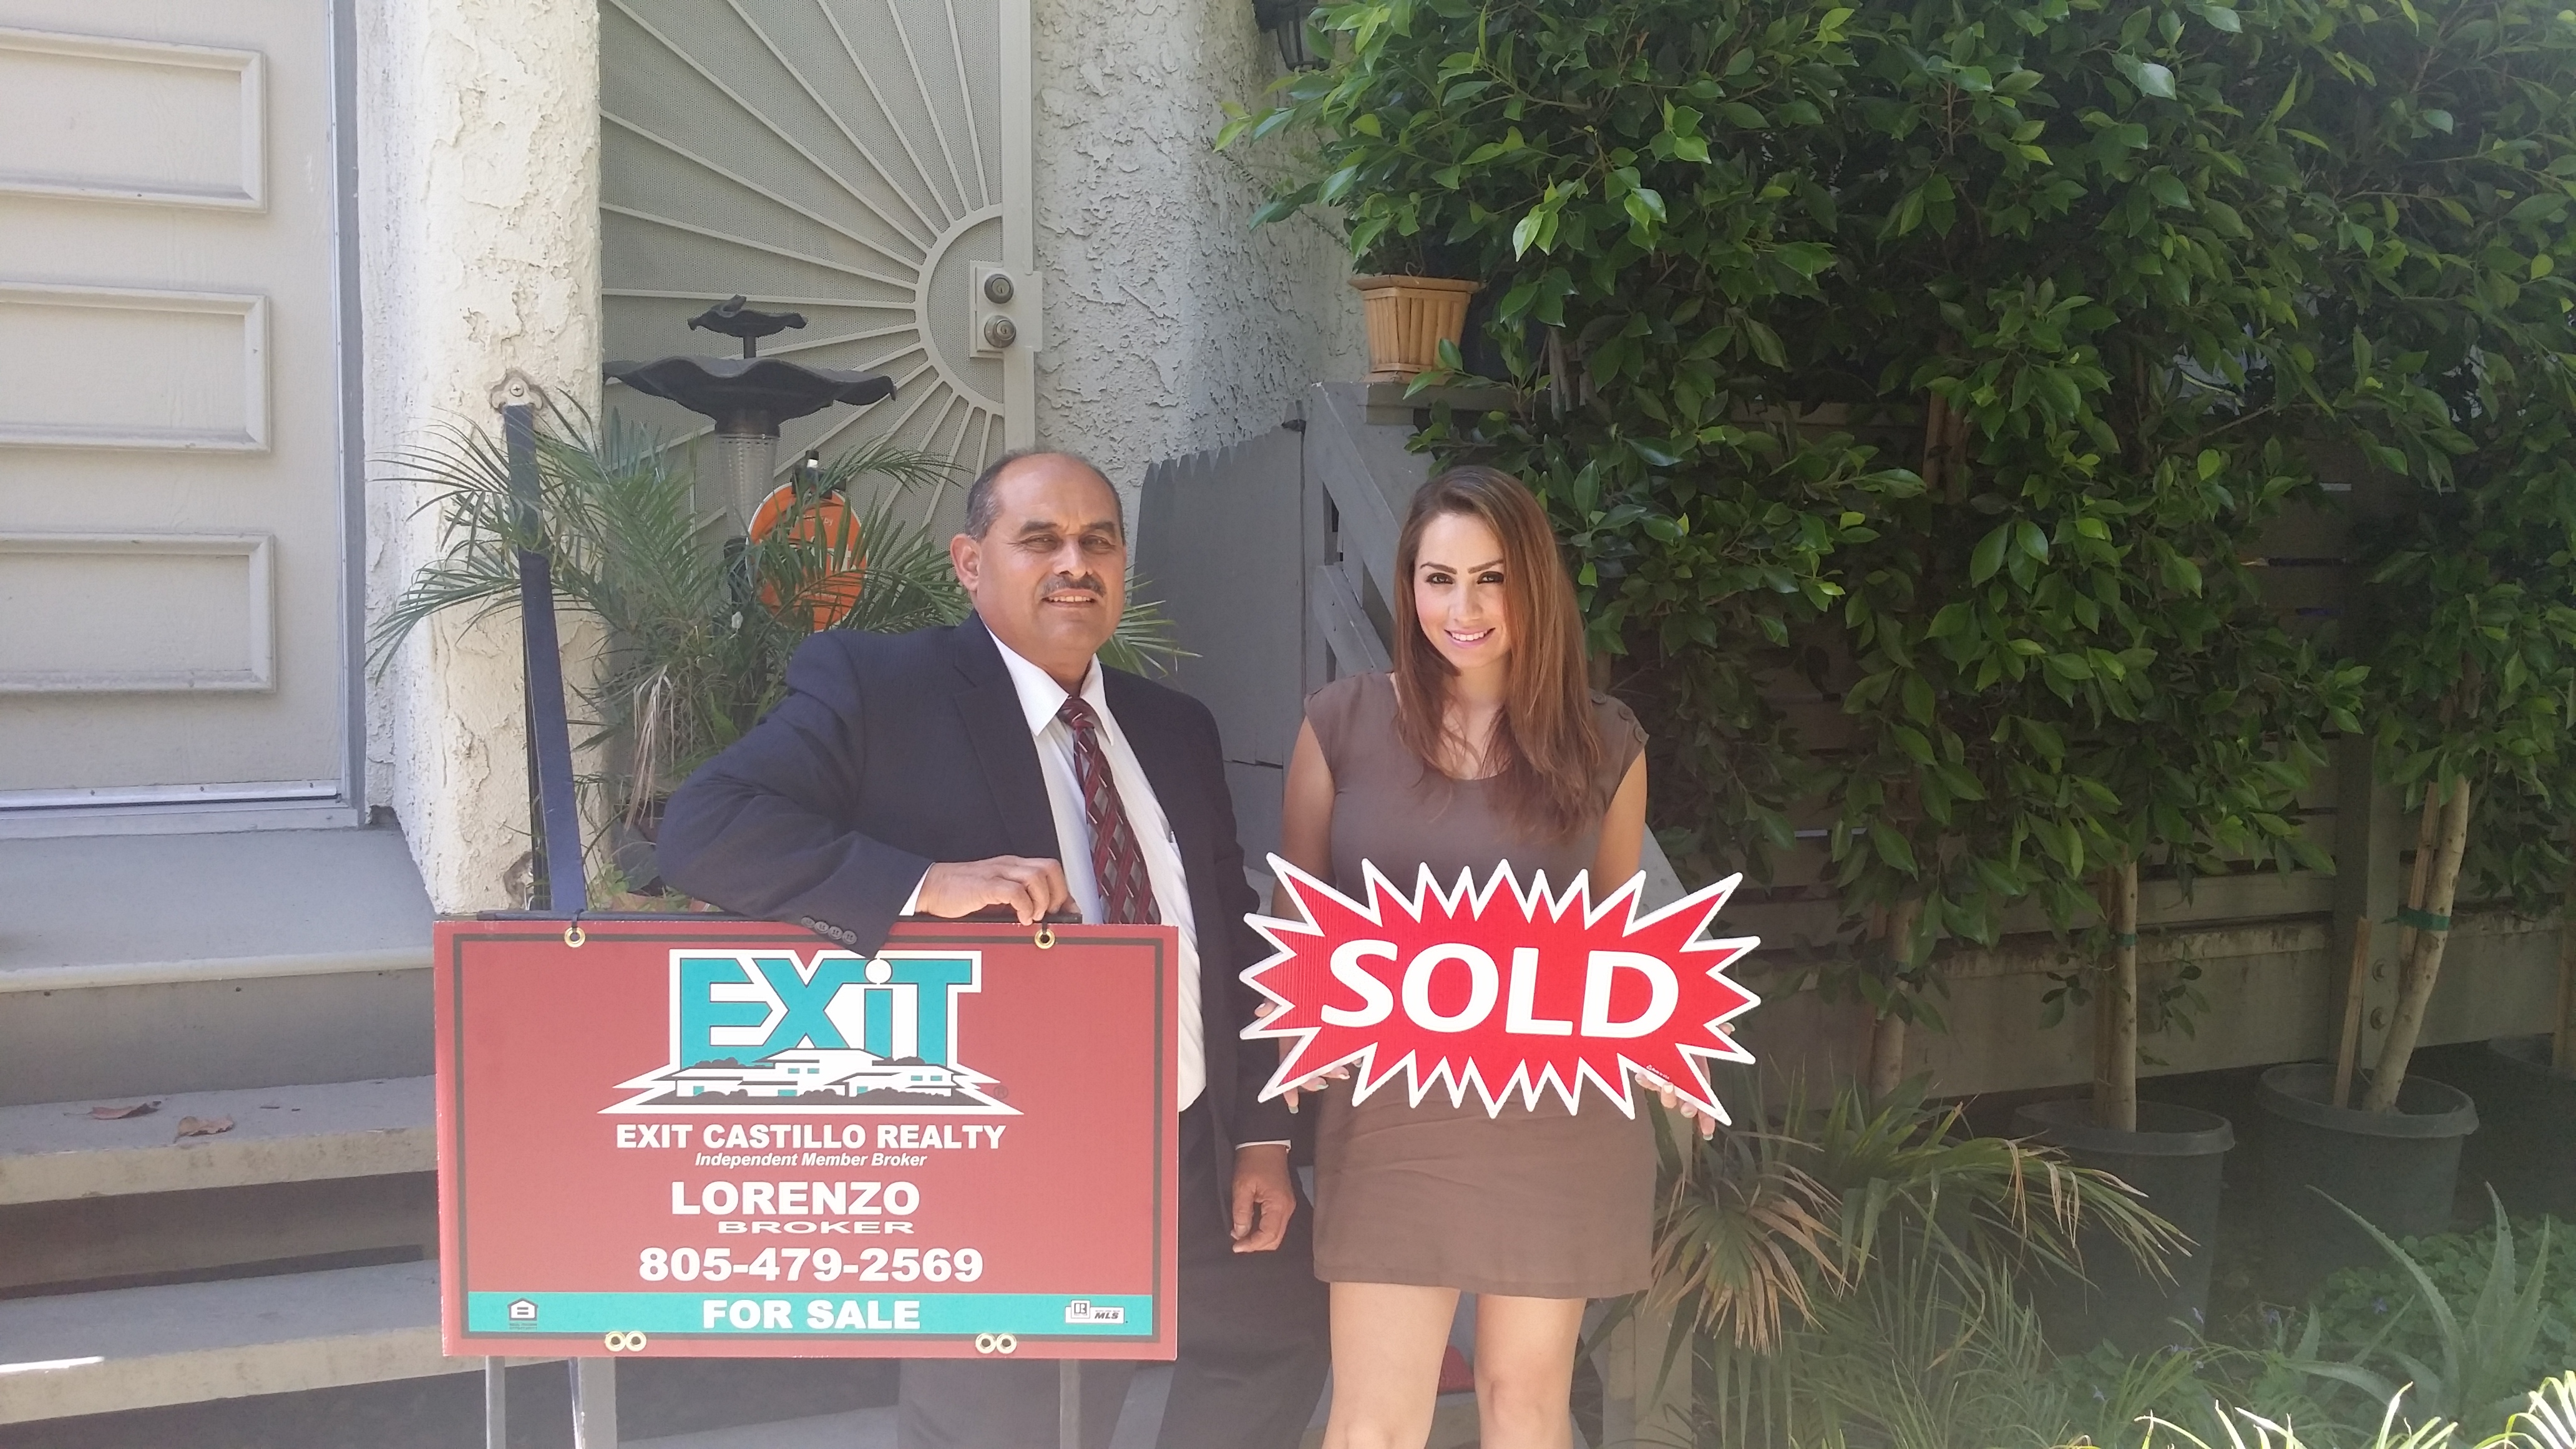 Lorenzo Castillo helps families sell and buy homes